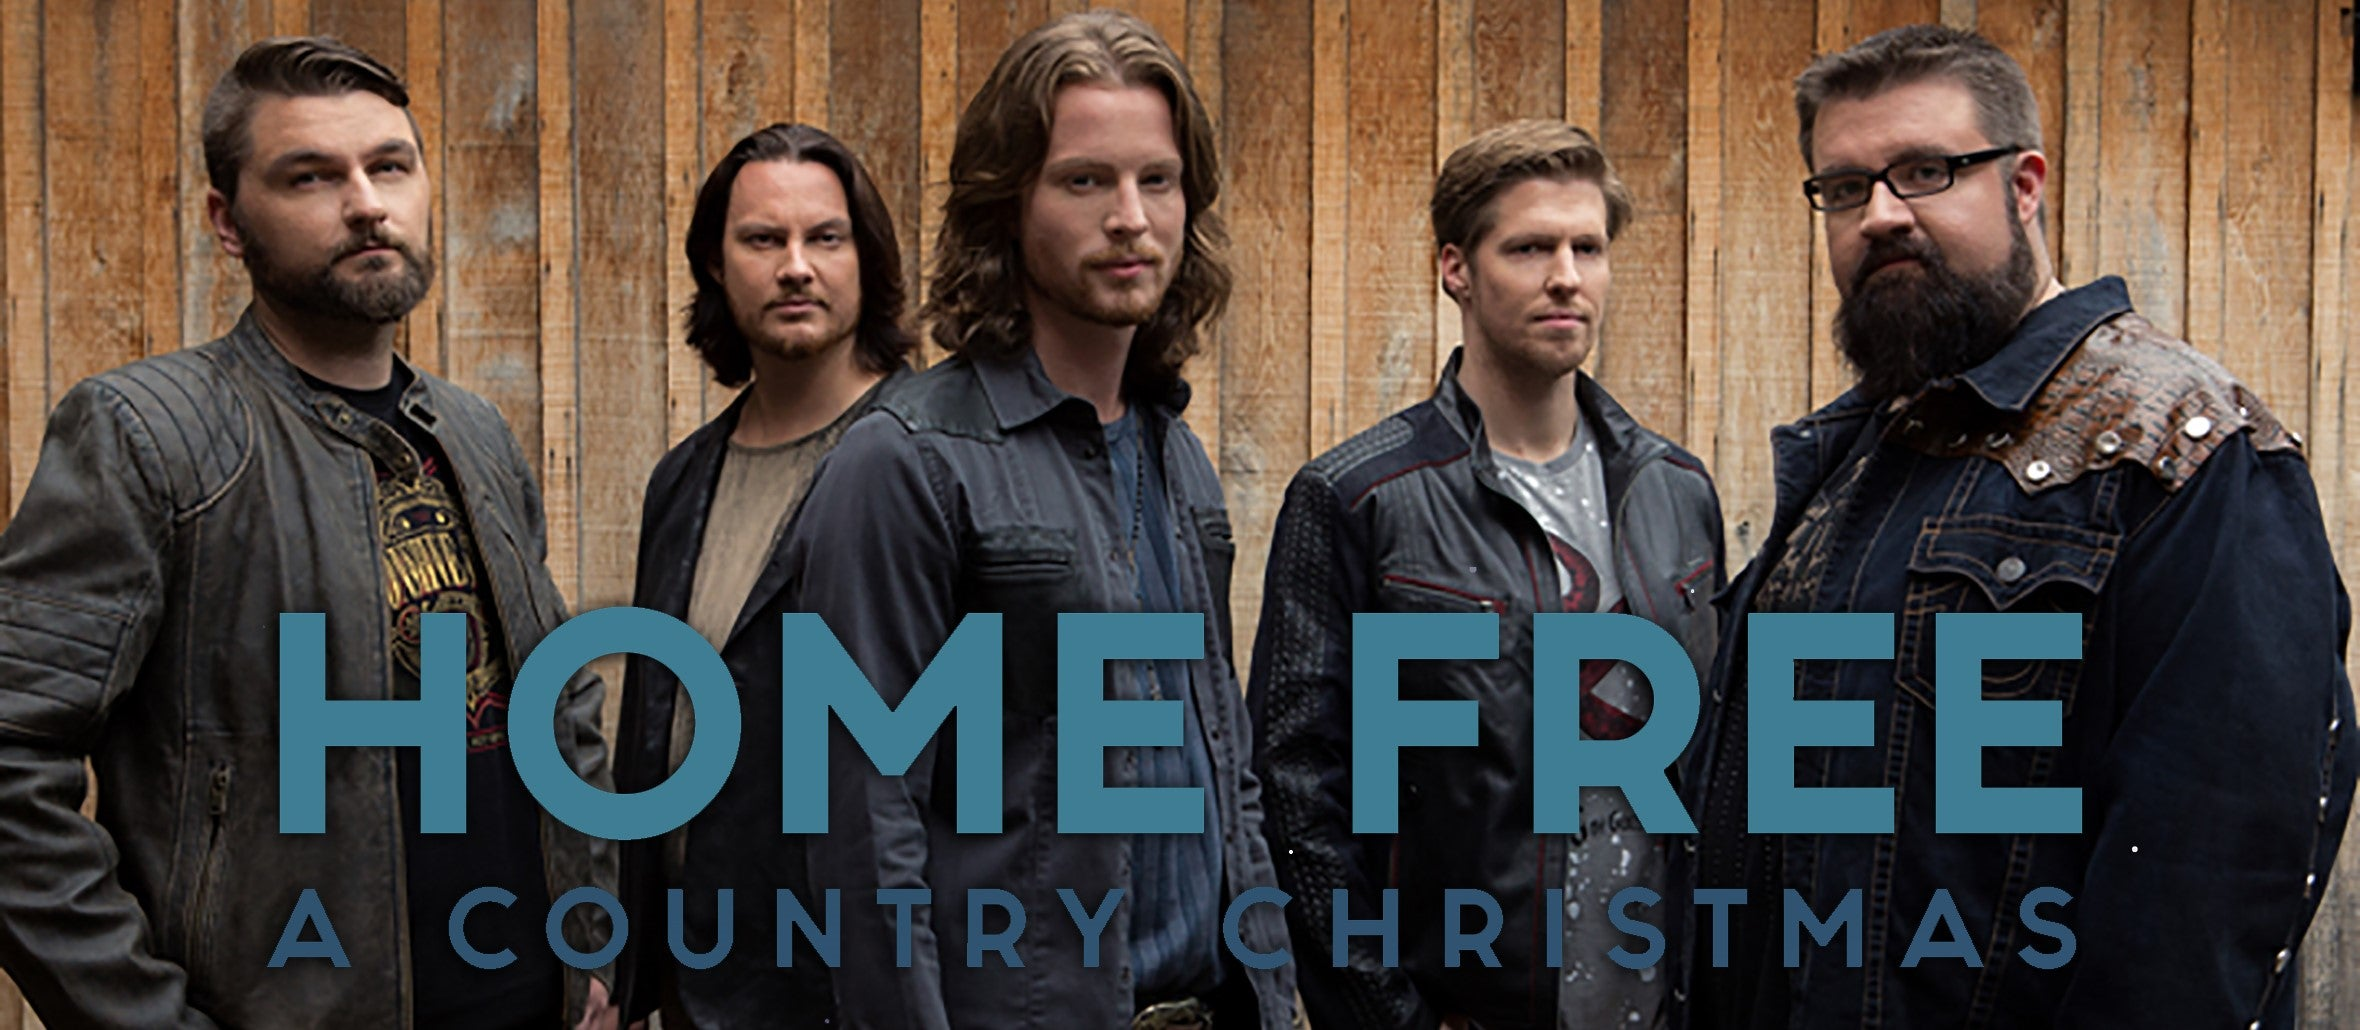 home free a country christmas - Country Christmas Movie